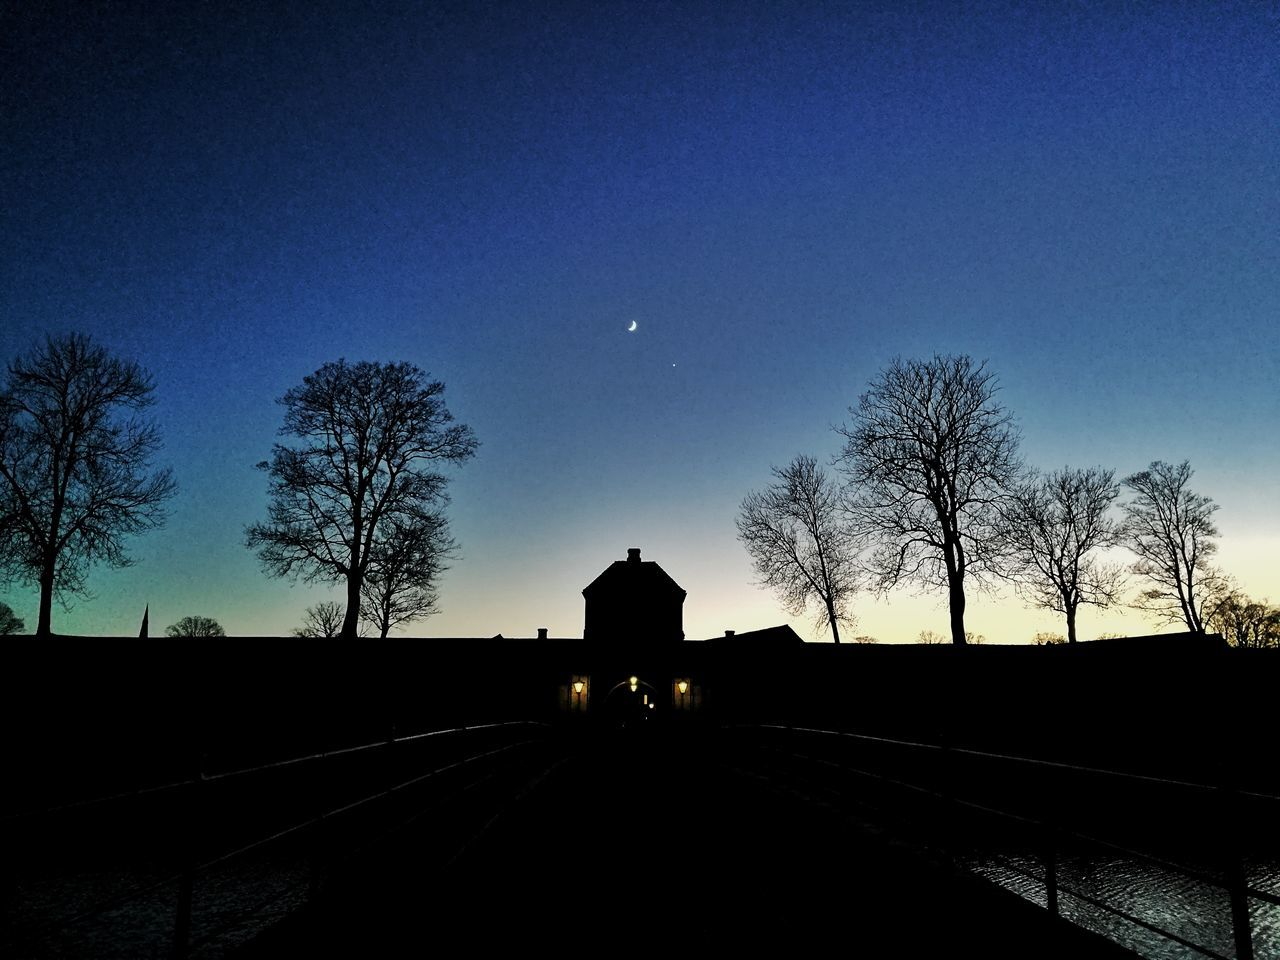 Silhouette Sky Mode Of Transport Transportation Land Vehicle Tree Night Star - Space No People Astronomy Sunset Star Field Nature Constellation Beauty In Nature Outdoors